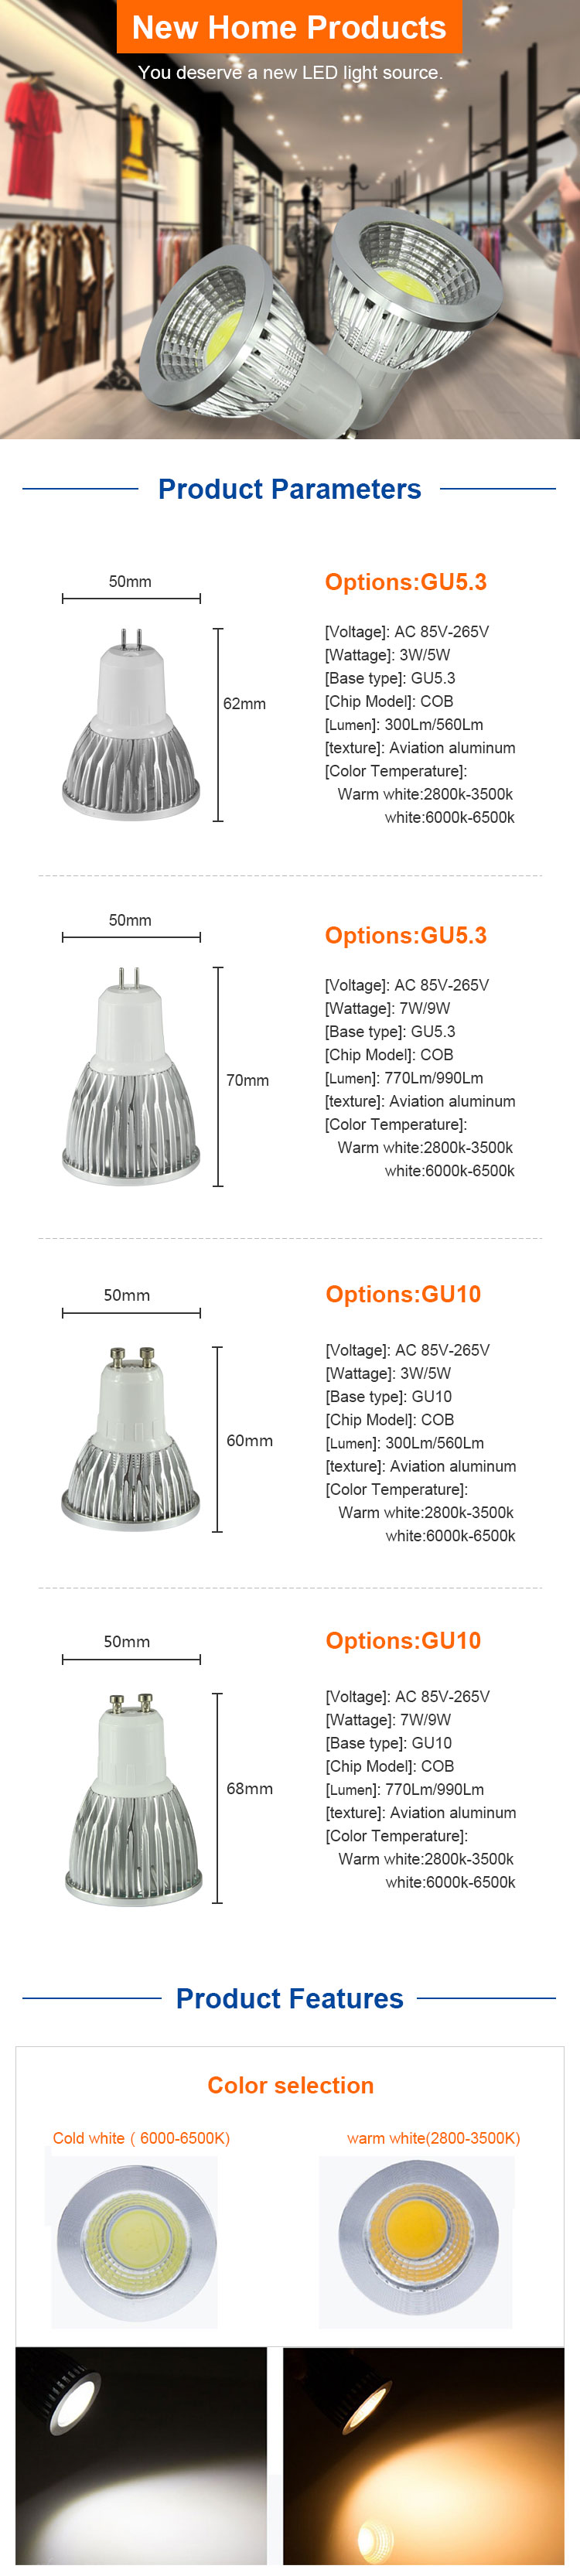 led the reflector gu10 3 w 5 w 7W 9W 85 to 265 v lamp led lamp 220 v gu5.3 commercial candle luz led light bulbs mr16 lighting